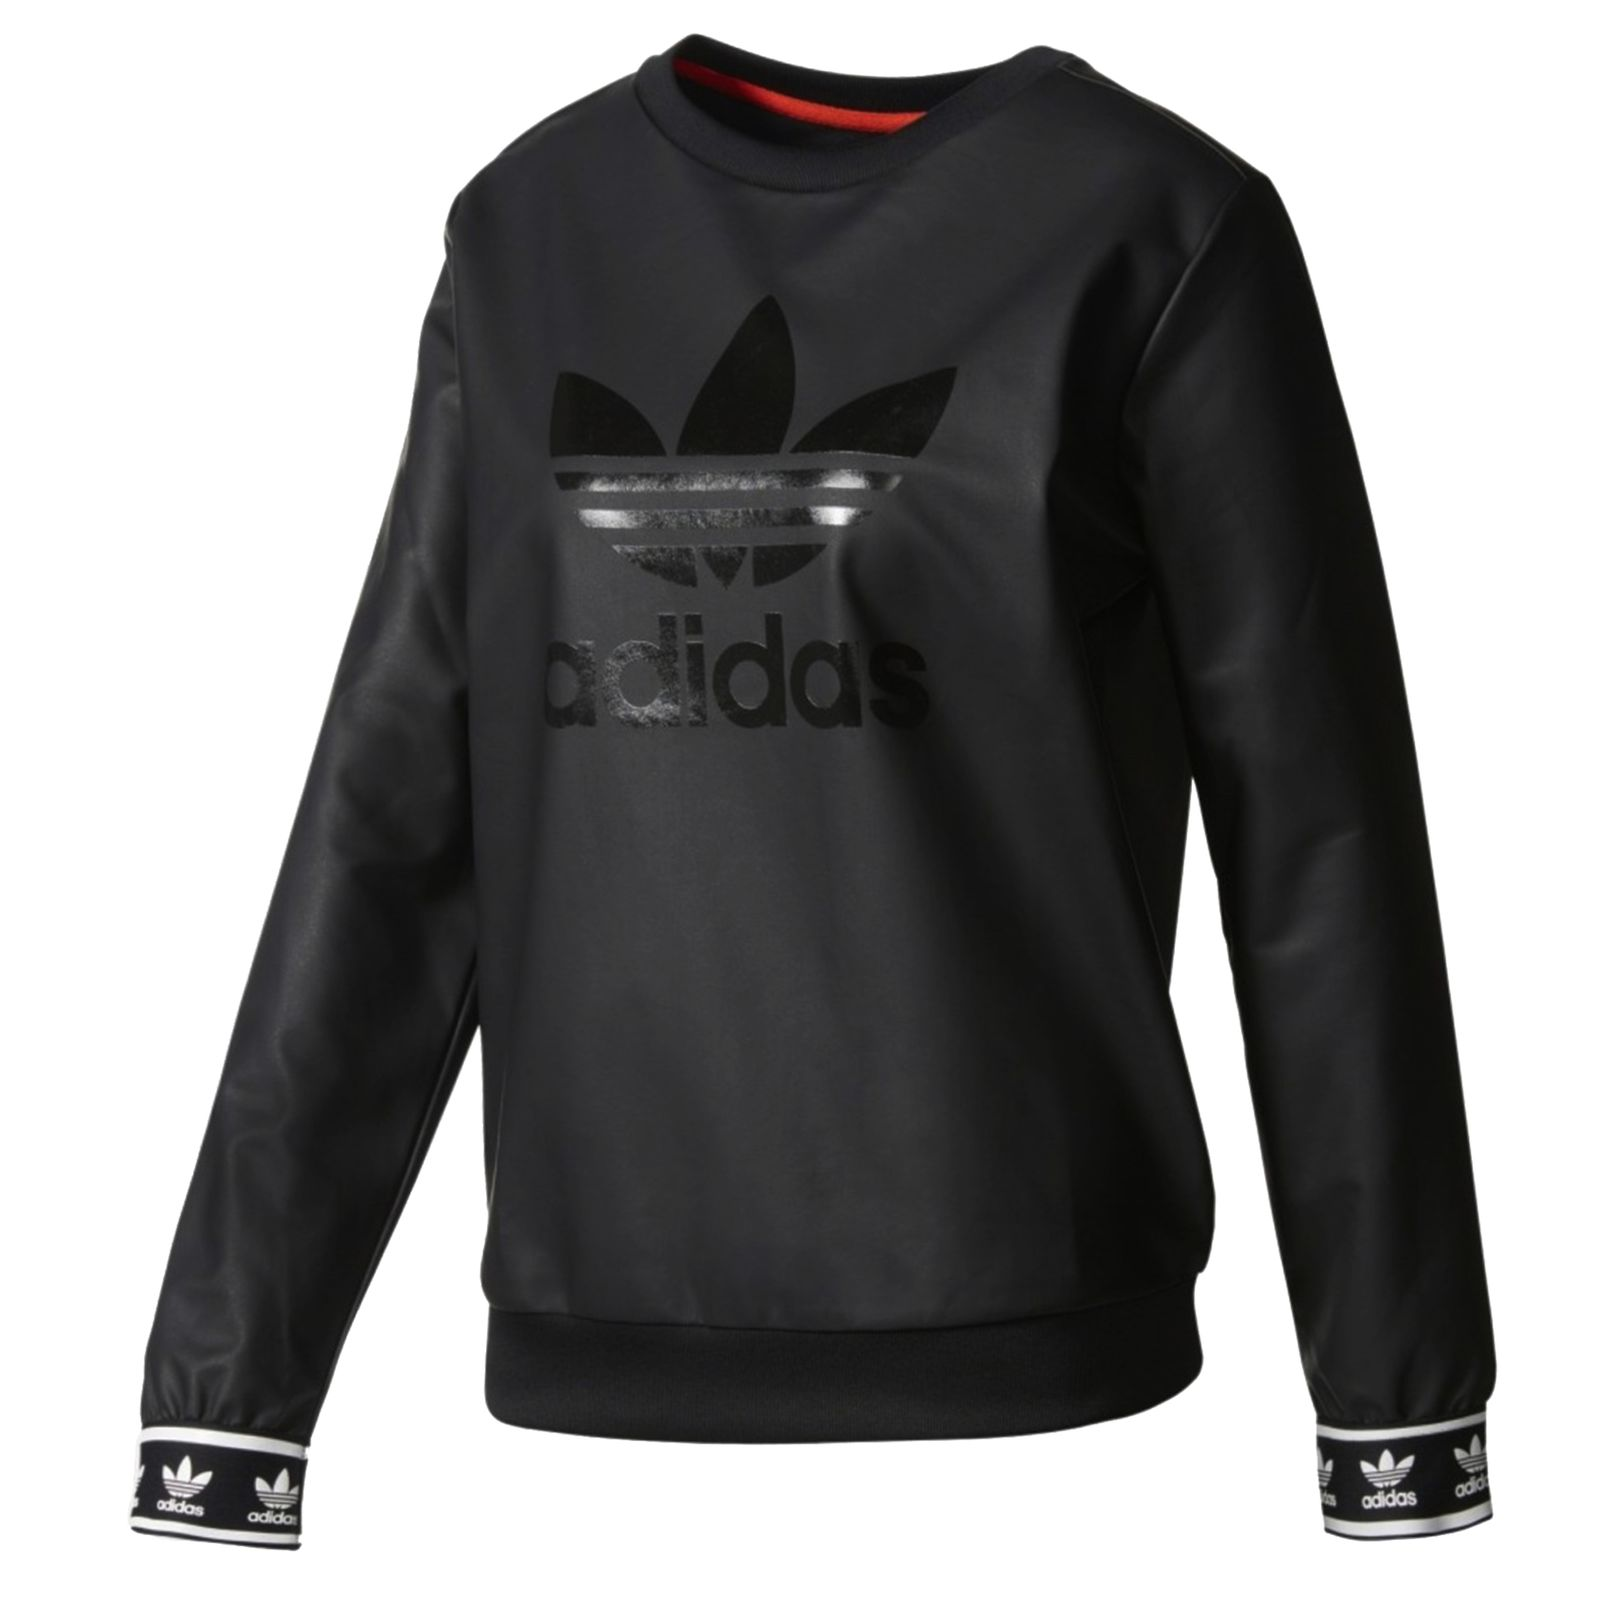 Details about Adidas Originals Crew Sweater Ladies Trefoil Logo Sweatshirt  Leather Look Black 029b2489df6